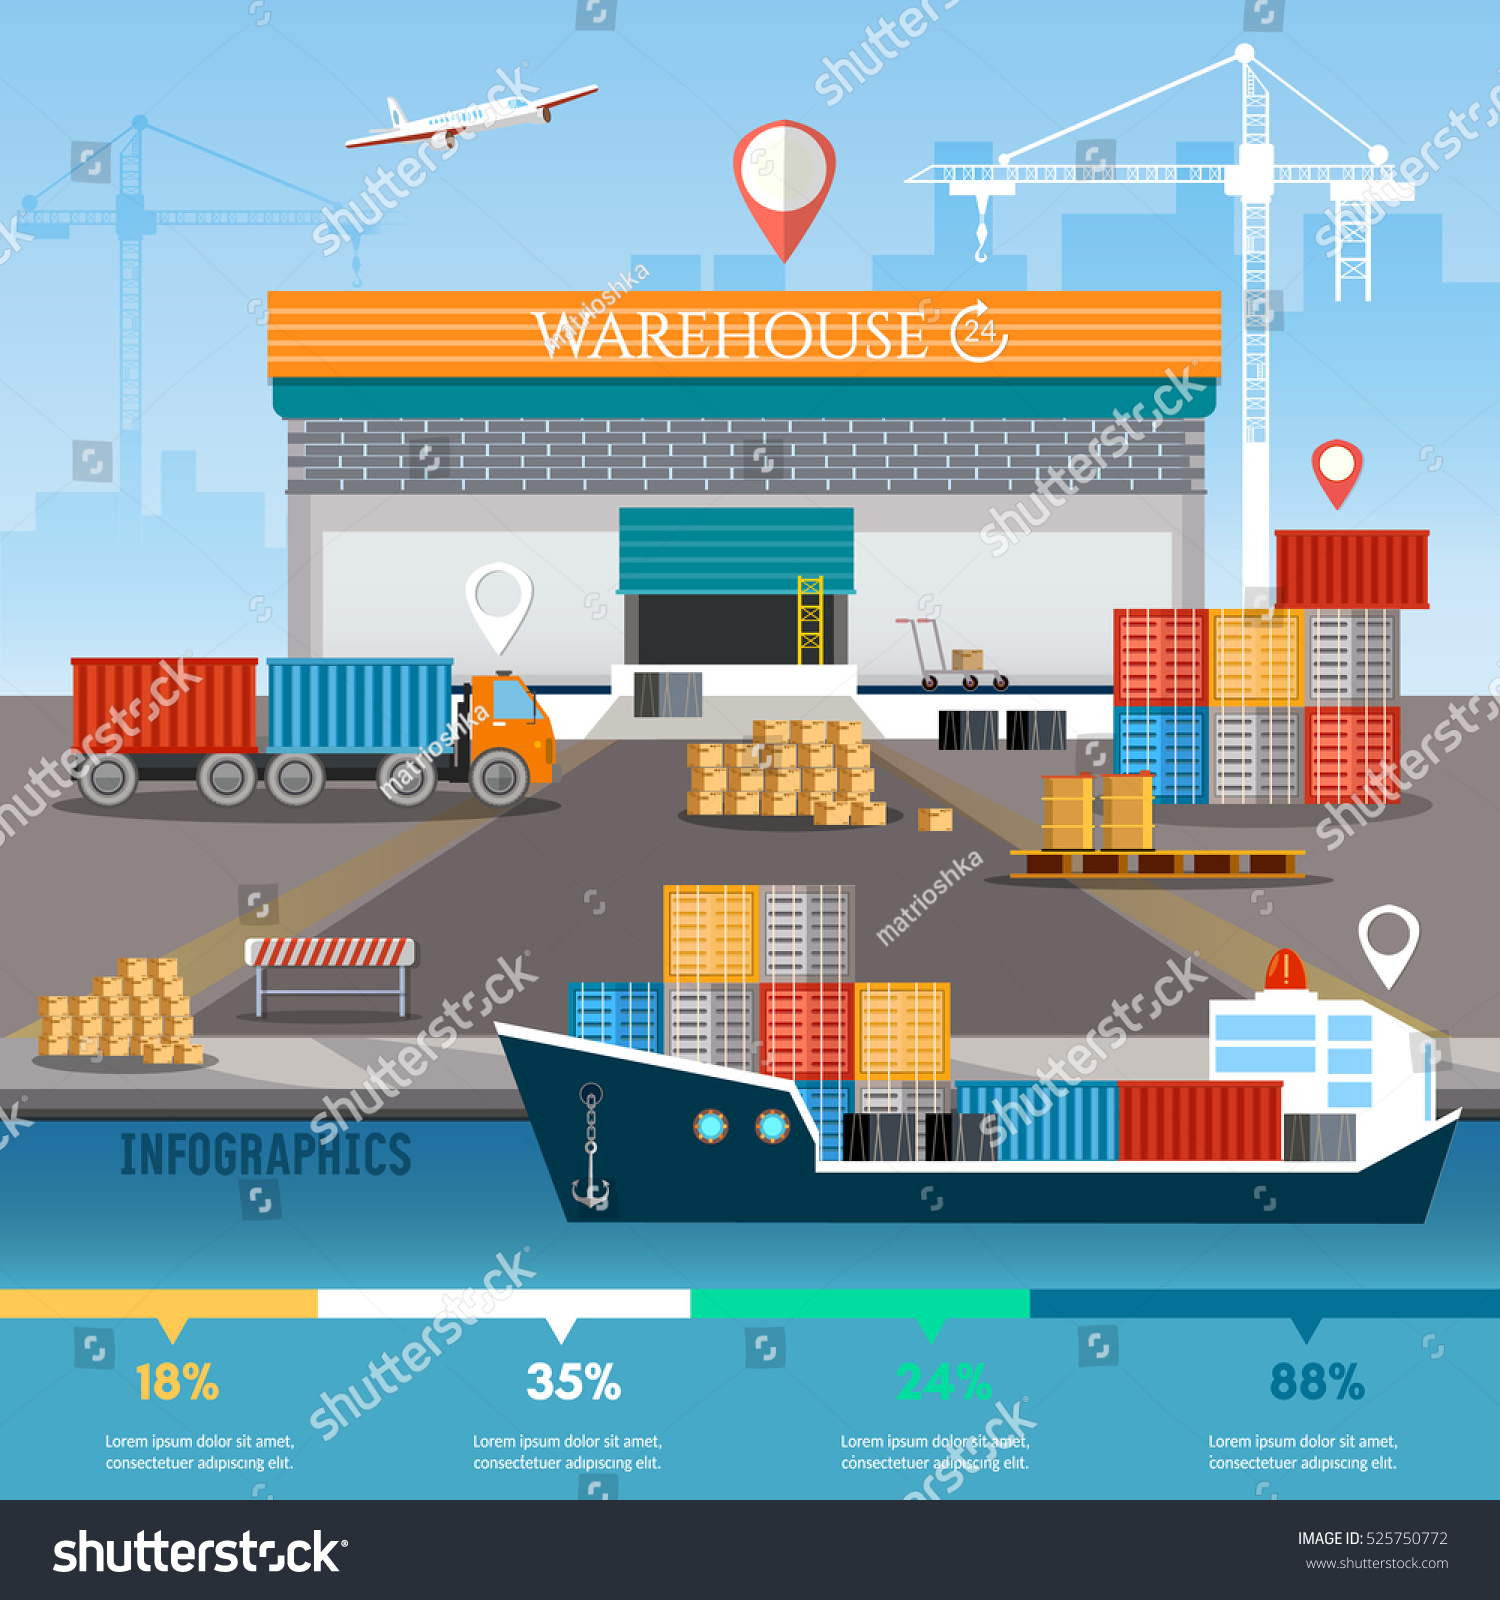 AMAZON BEST WAREHOUSE FOR SEA SHIPPING